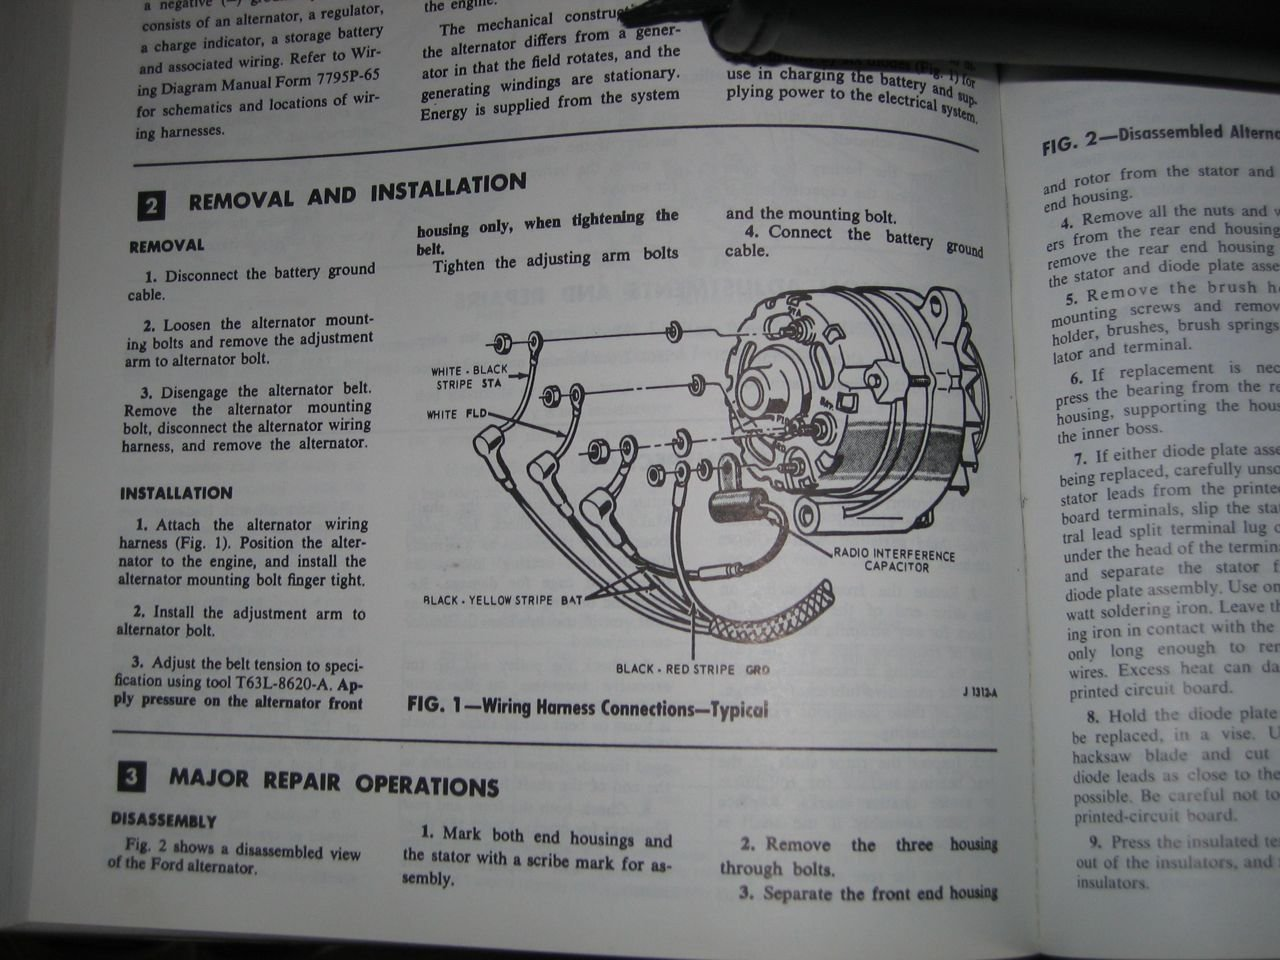 1966 Ford Fairlane Wiring Diagram On Wiring Diagram 66 Ford Fairlane